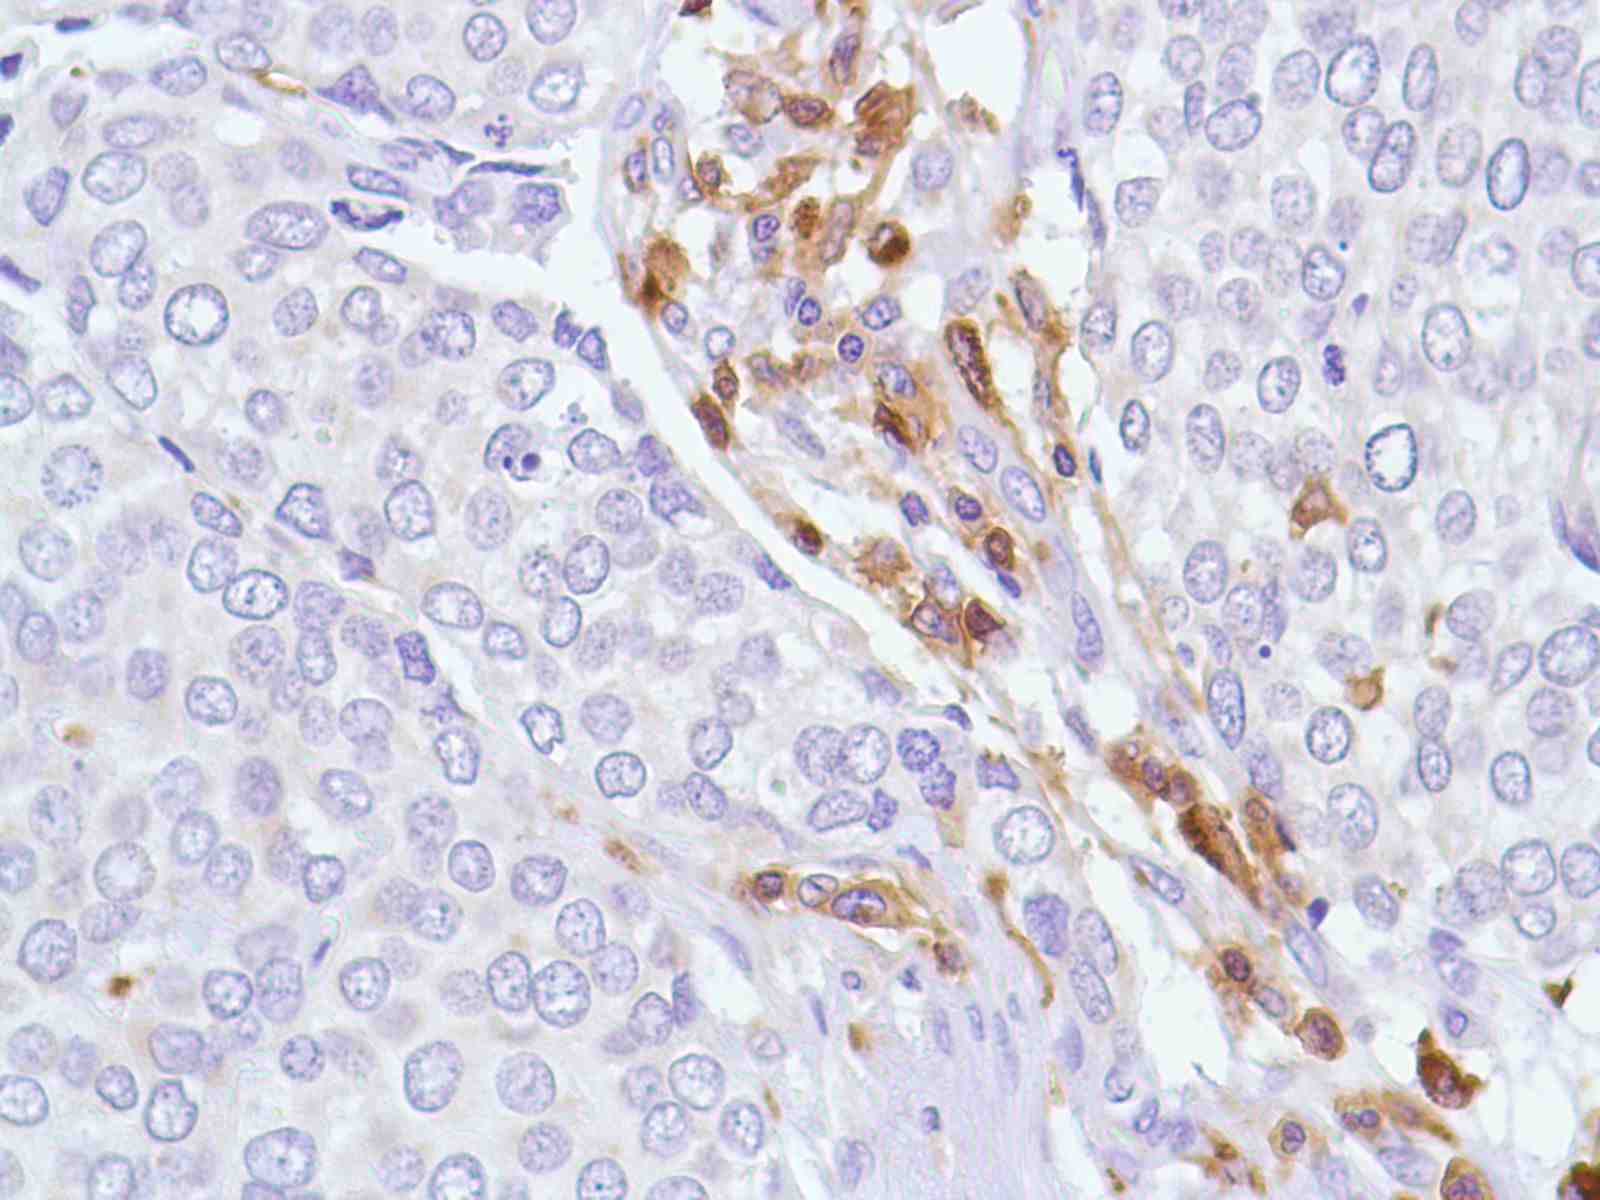 Human Bladder Transitional Cell Carcinoma stained with anti-CD43 antibody